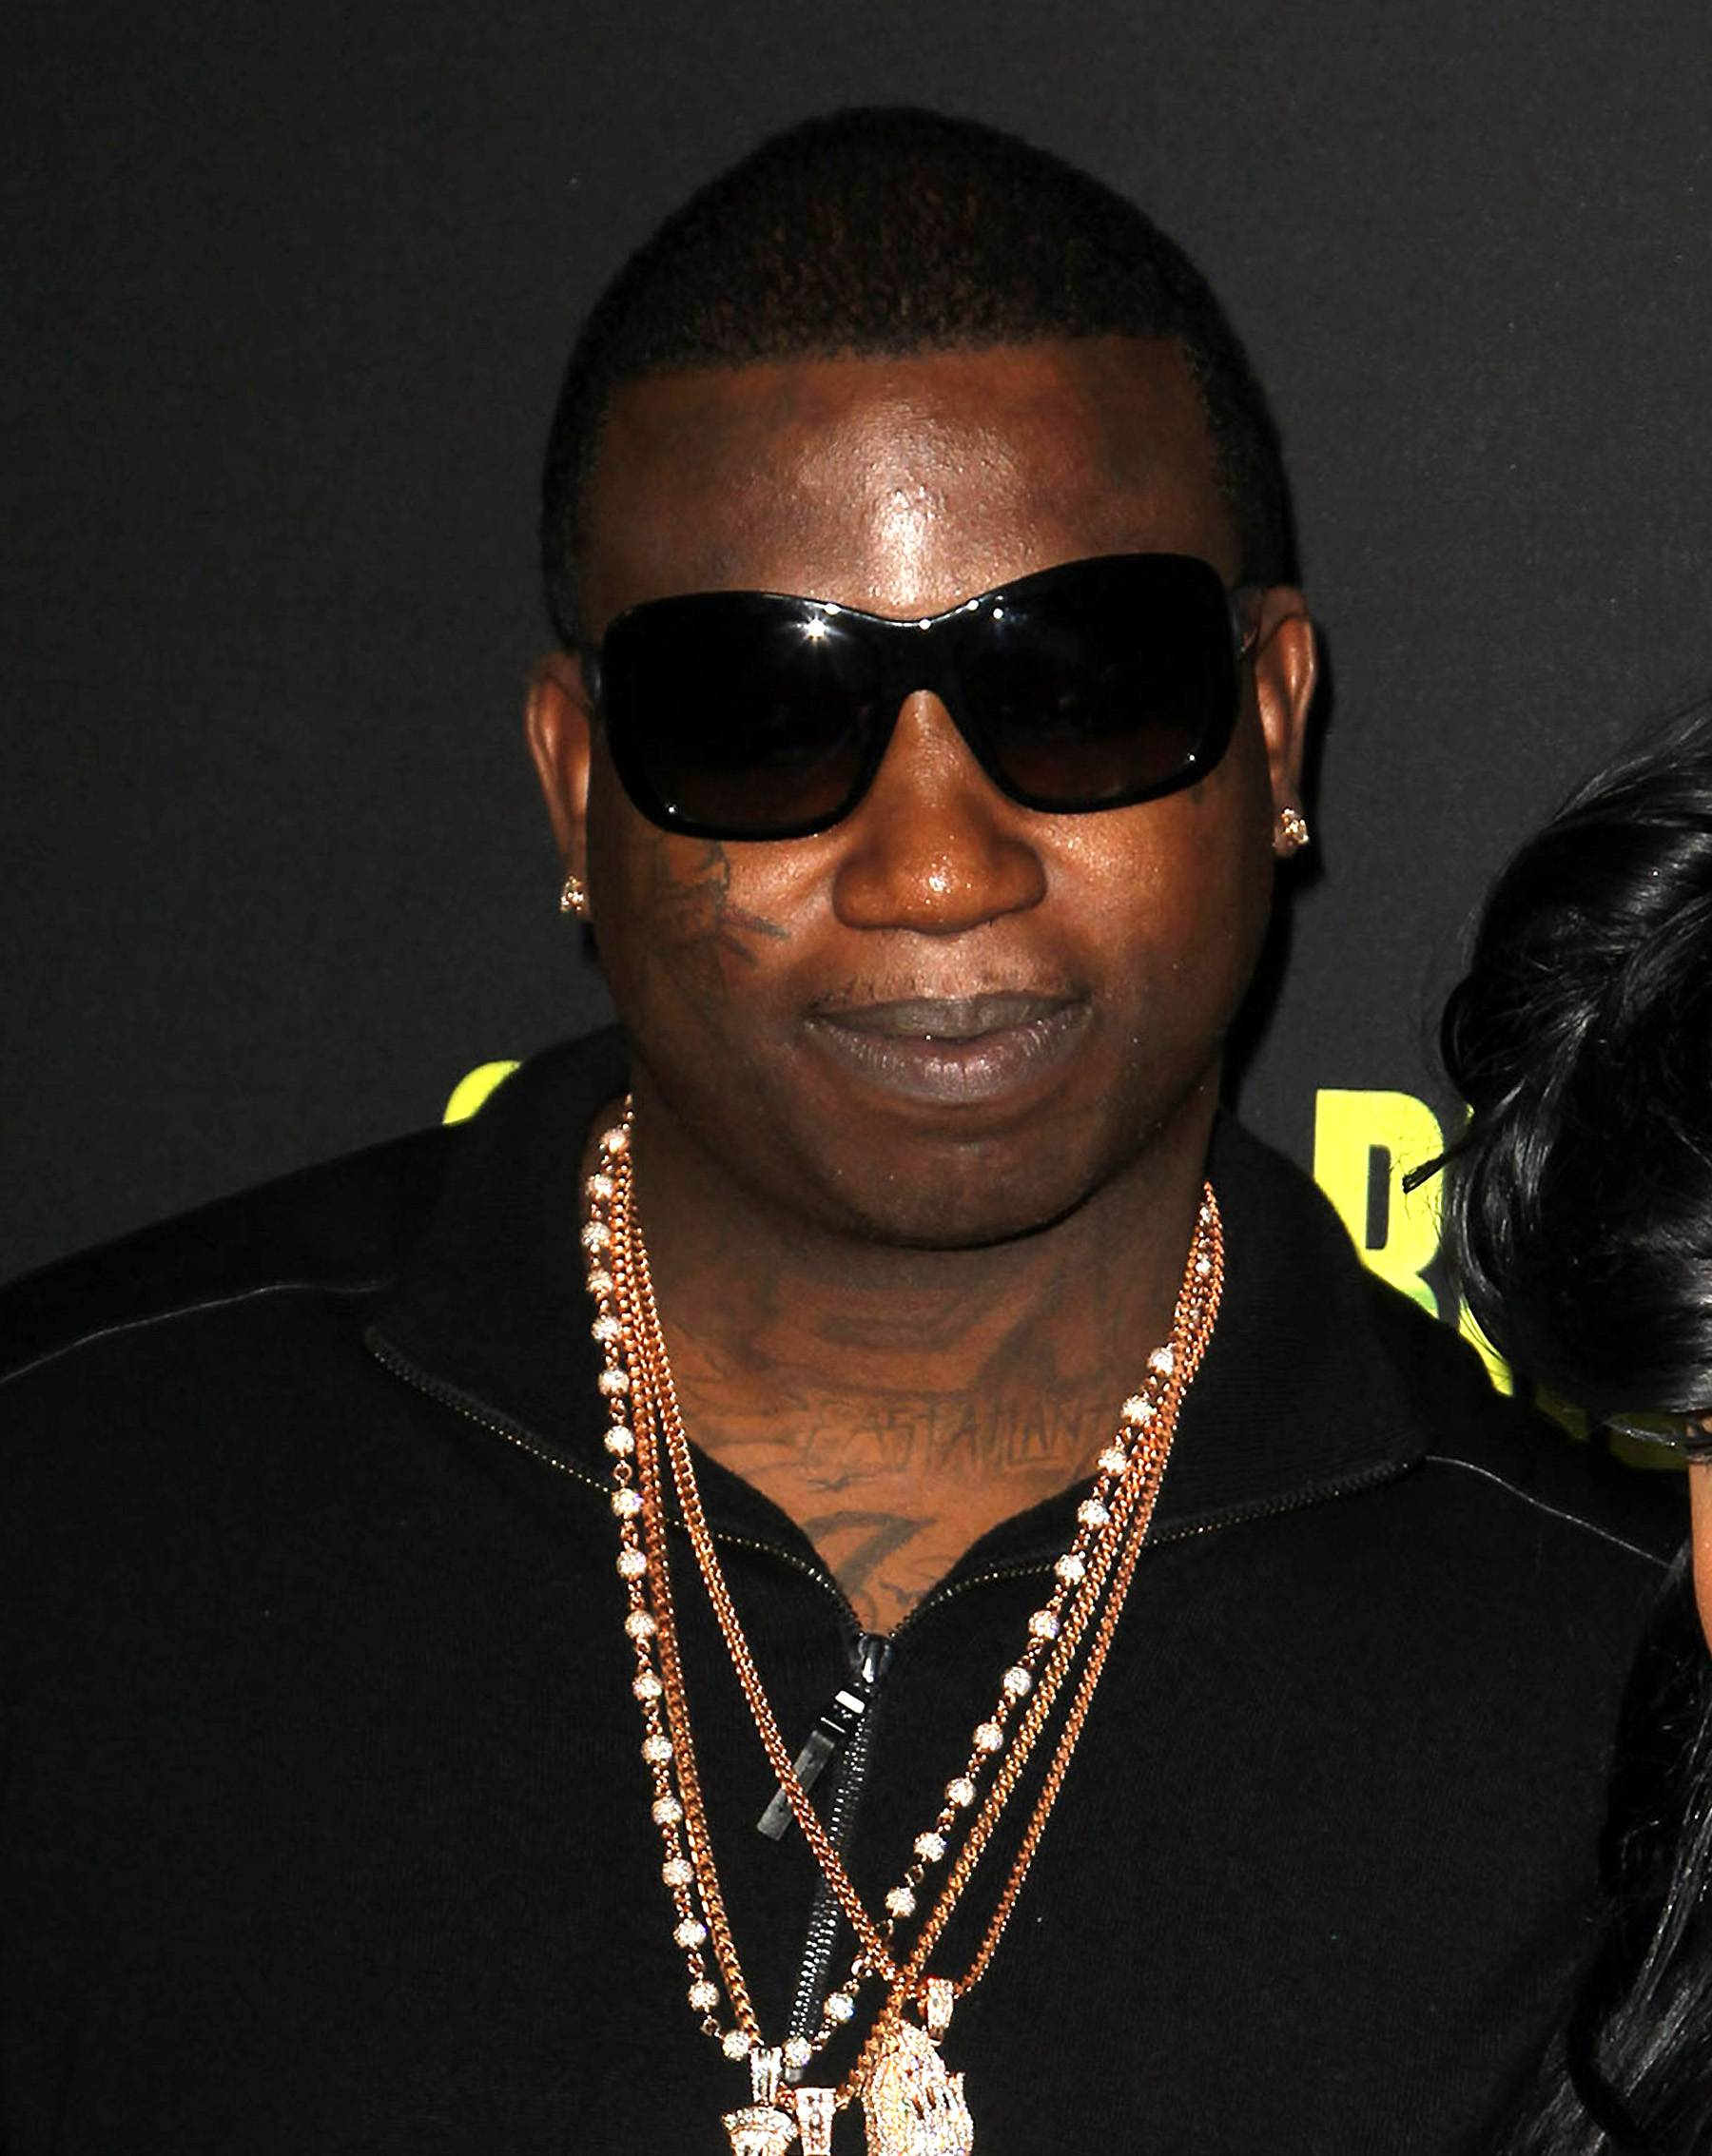 Gucci Mane - Guwop went on a 3-day Twitter tirade back in September 2013 and left no one spared. He sent disses towards enemies and friends alike, likeRocko,Waka, T.I.,Nicki Minaj and Tyga.After what appeared to be a never-ending drug-induced rant, Gucci claimed he was hacked and exited stage left.(Photo: KevanBrooks/AdMedia/Splash News)